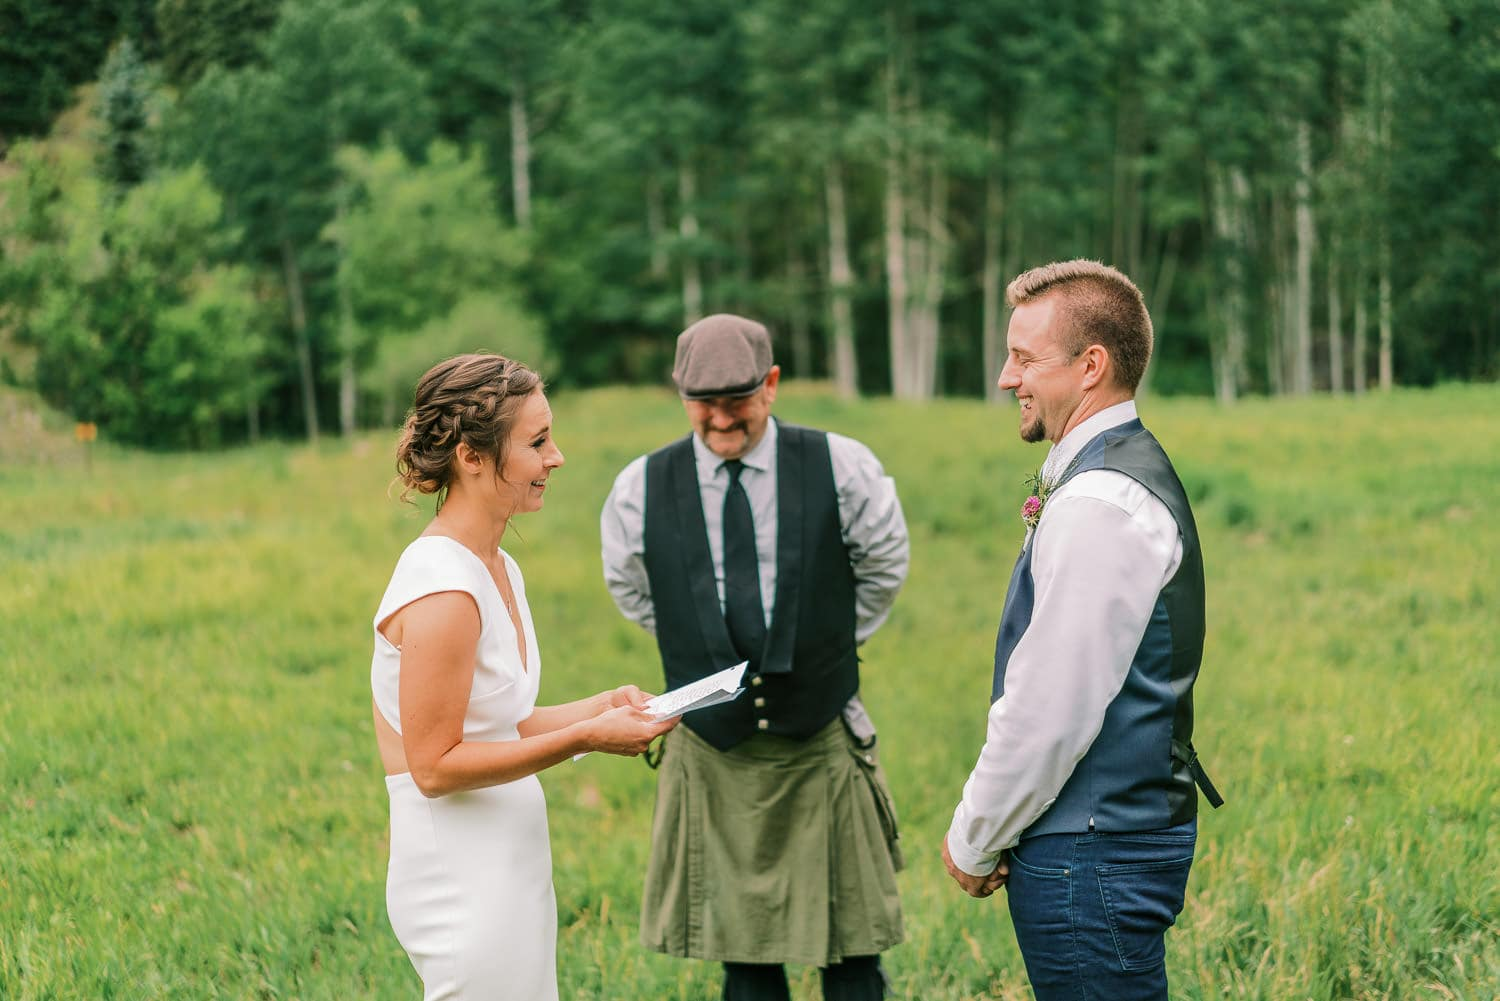 Bride says vows to her groom at an outdoor wedding in Colorado.